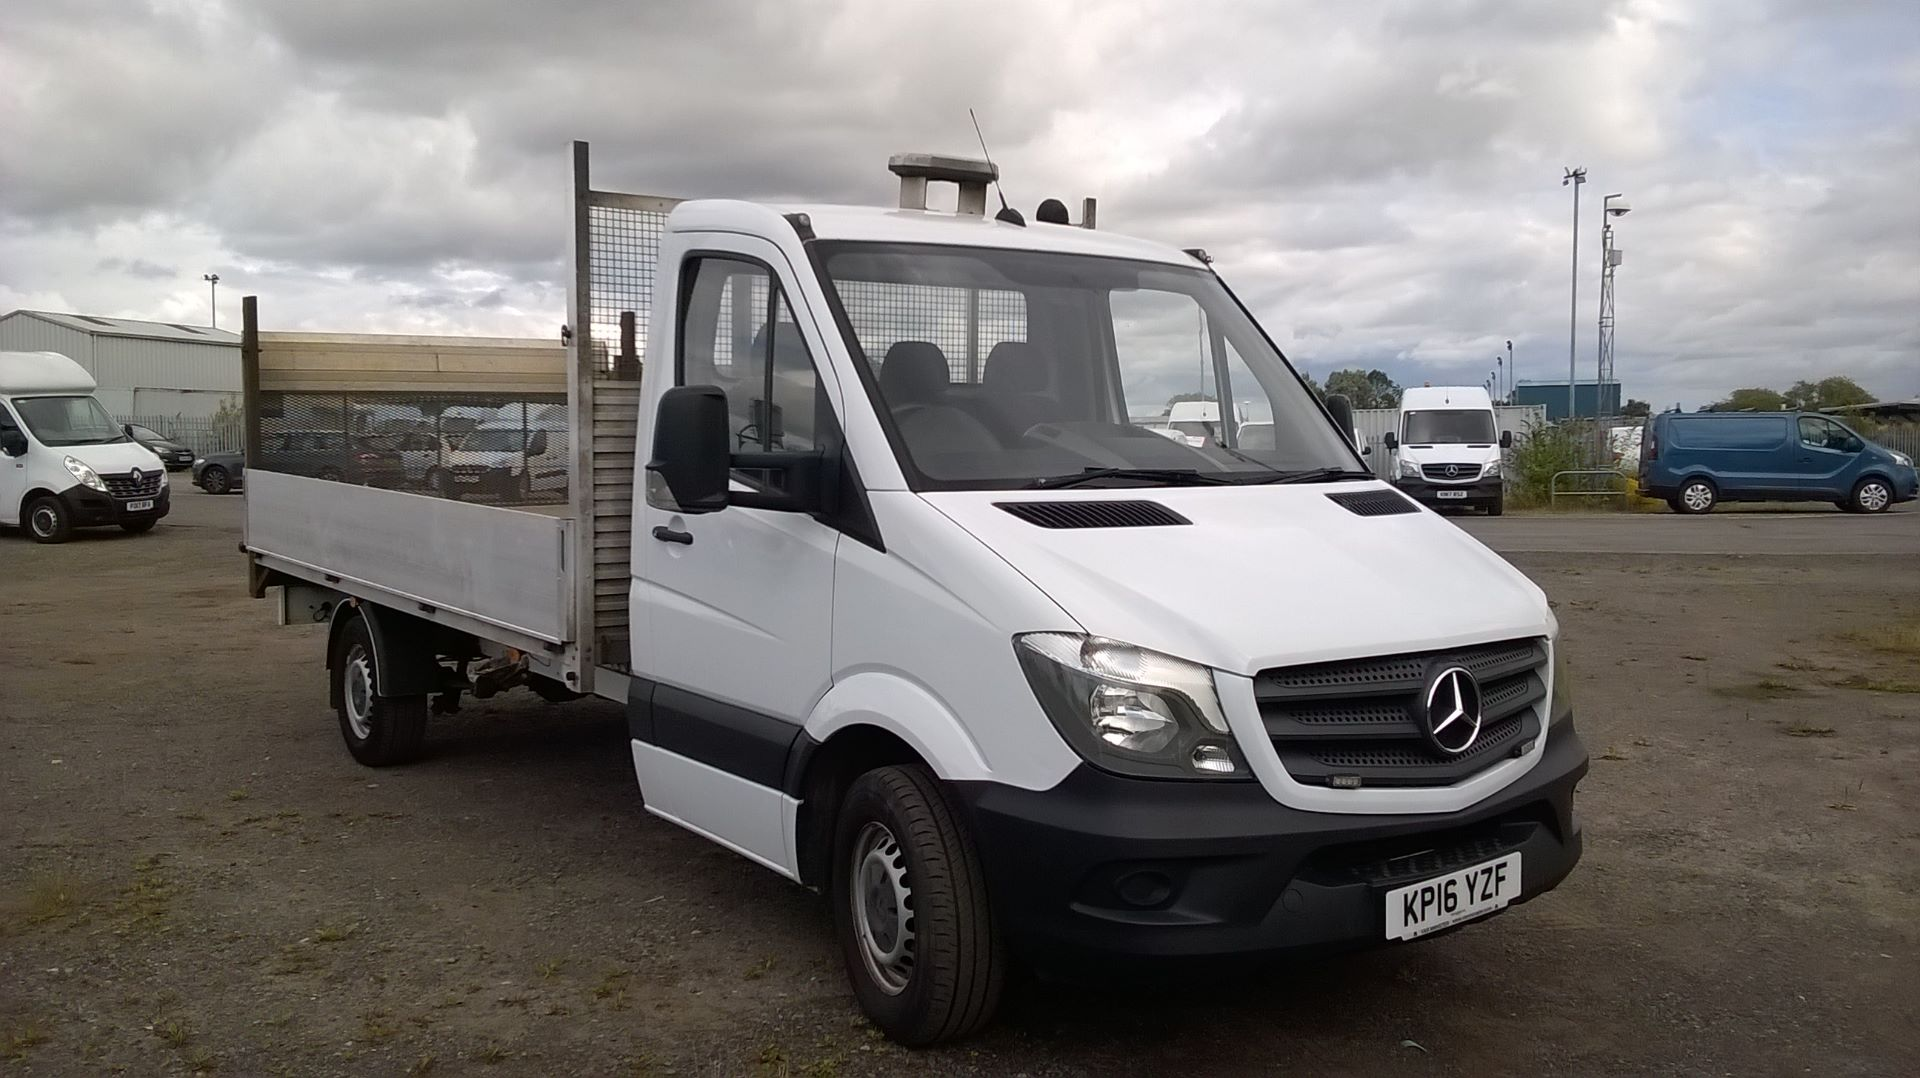 2016 Mercedes-Benz Sprinter 3.5T Chassis Cab  (VALUE RANGE VEHICLE CONDITION REFLECTED IN PRICE (KP16YZF) Image 1